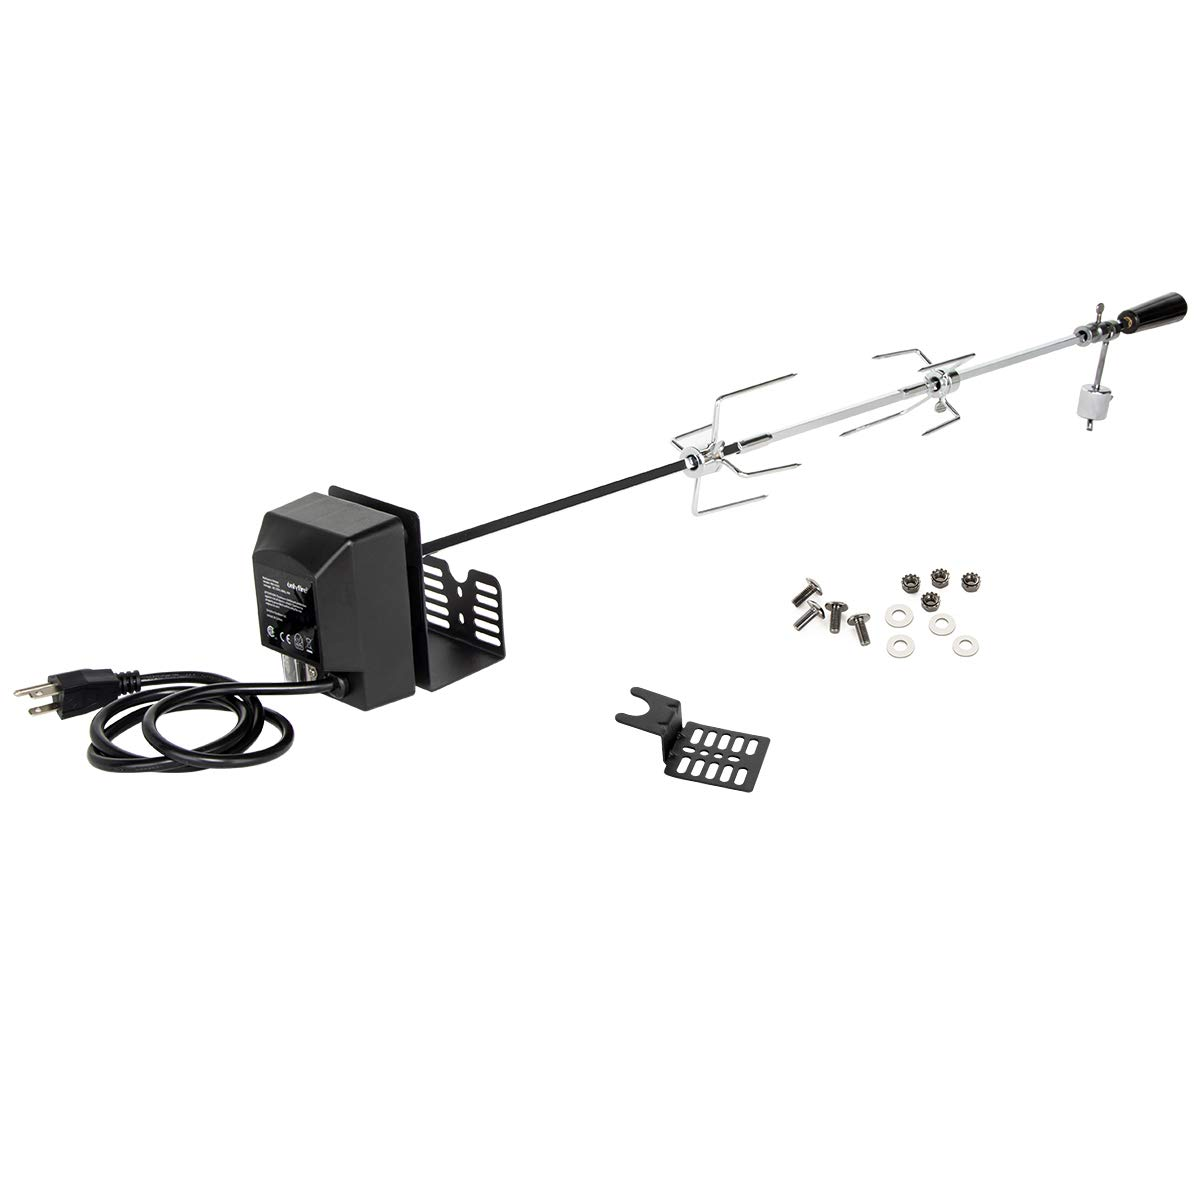 Onlyfire Universal Rotisserie Kit 32''- 42'' x 5/16'' Square Spit Rod for Use with 2 to 4 Burners Gas Grill by only fire